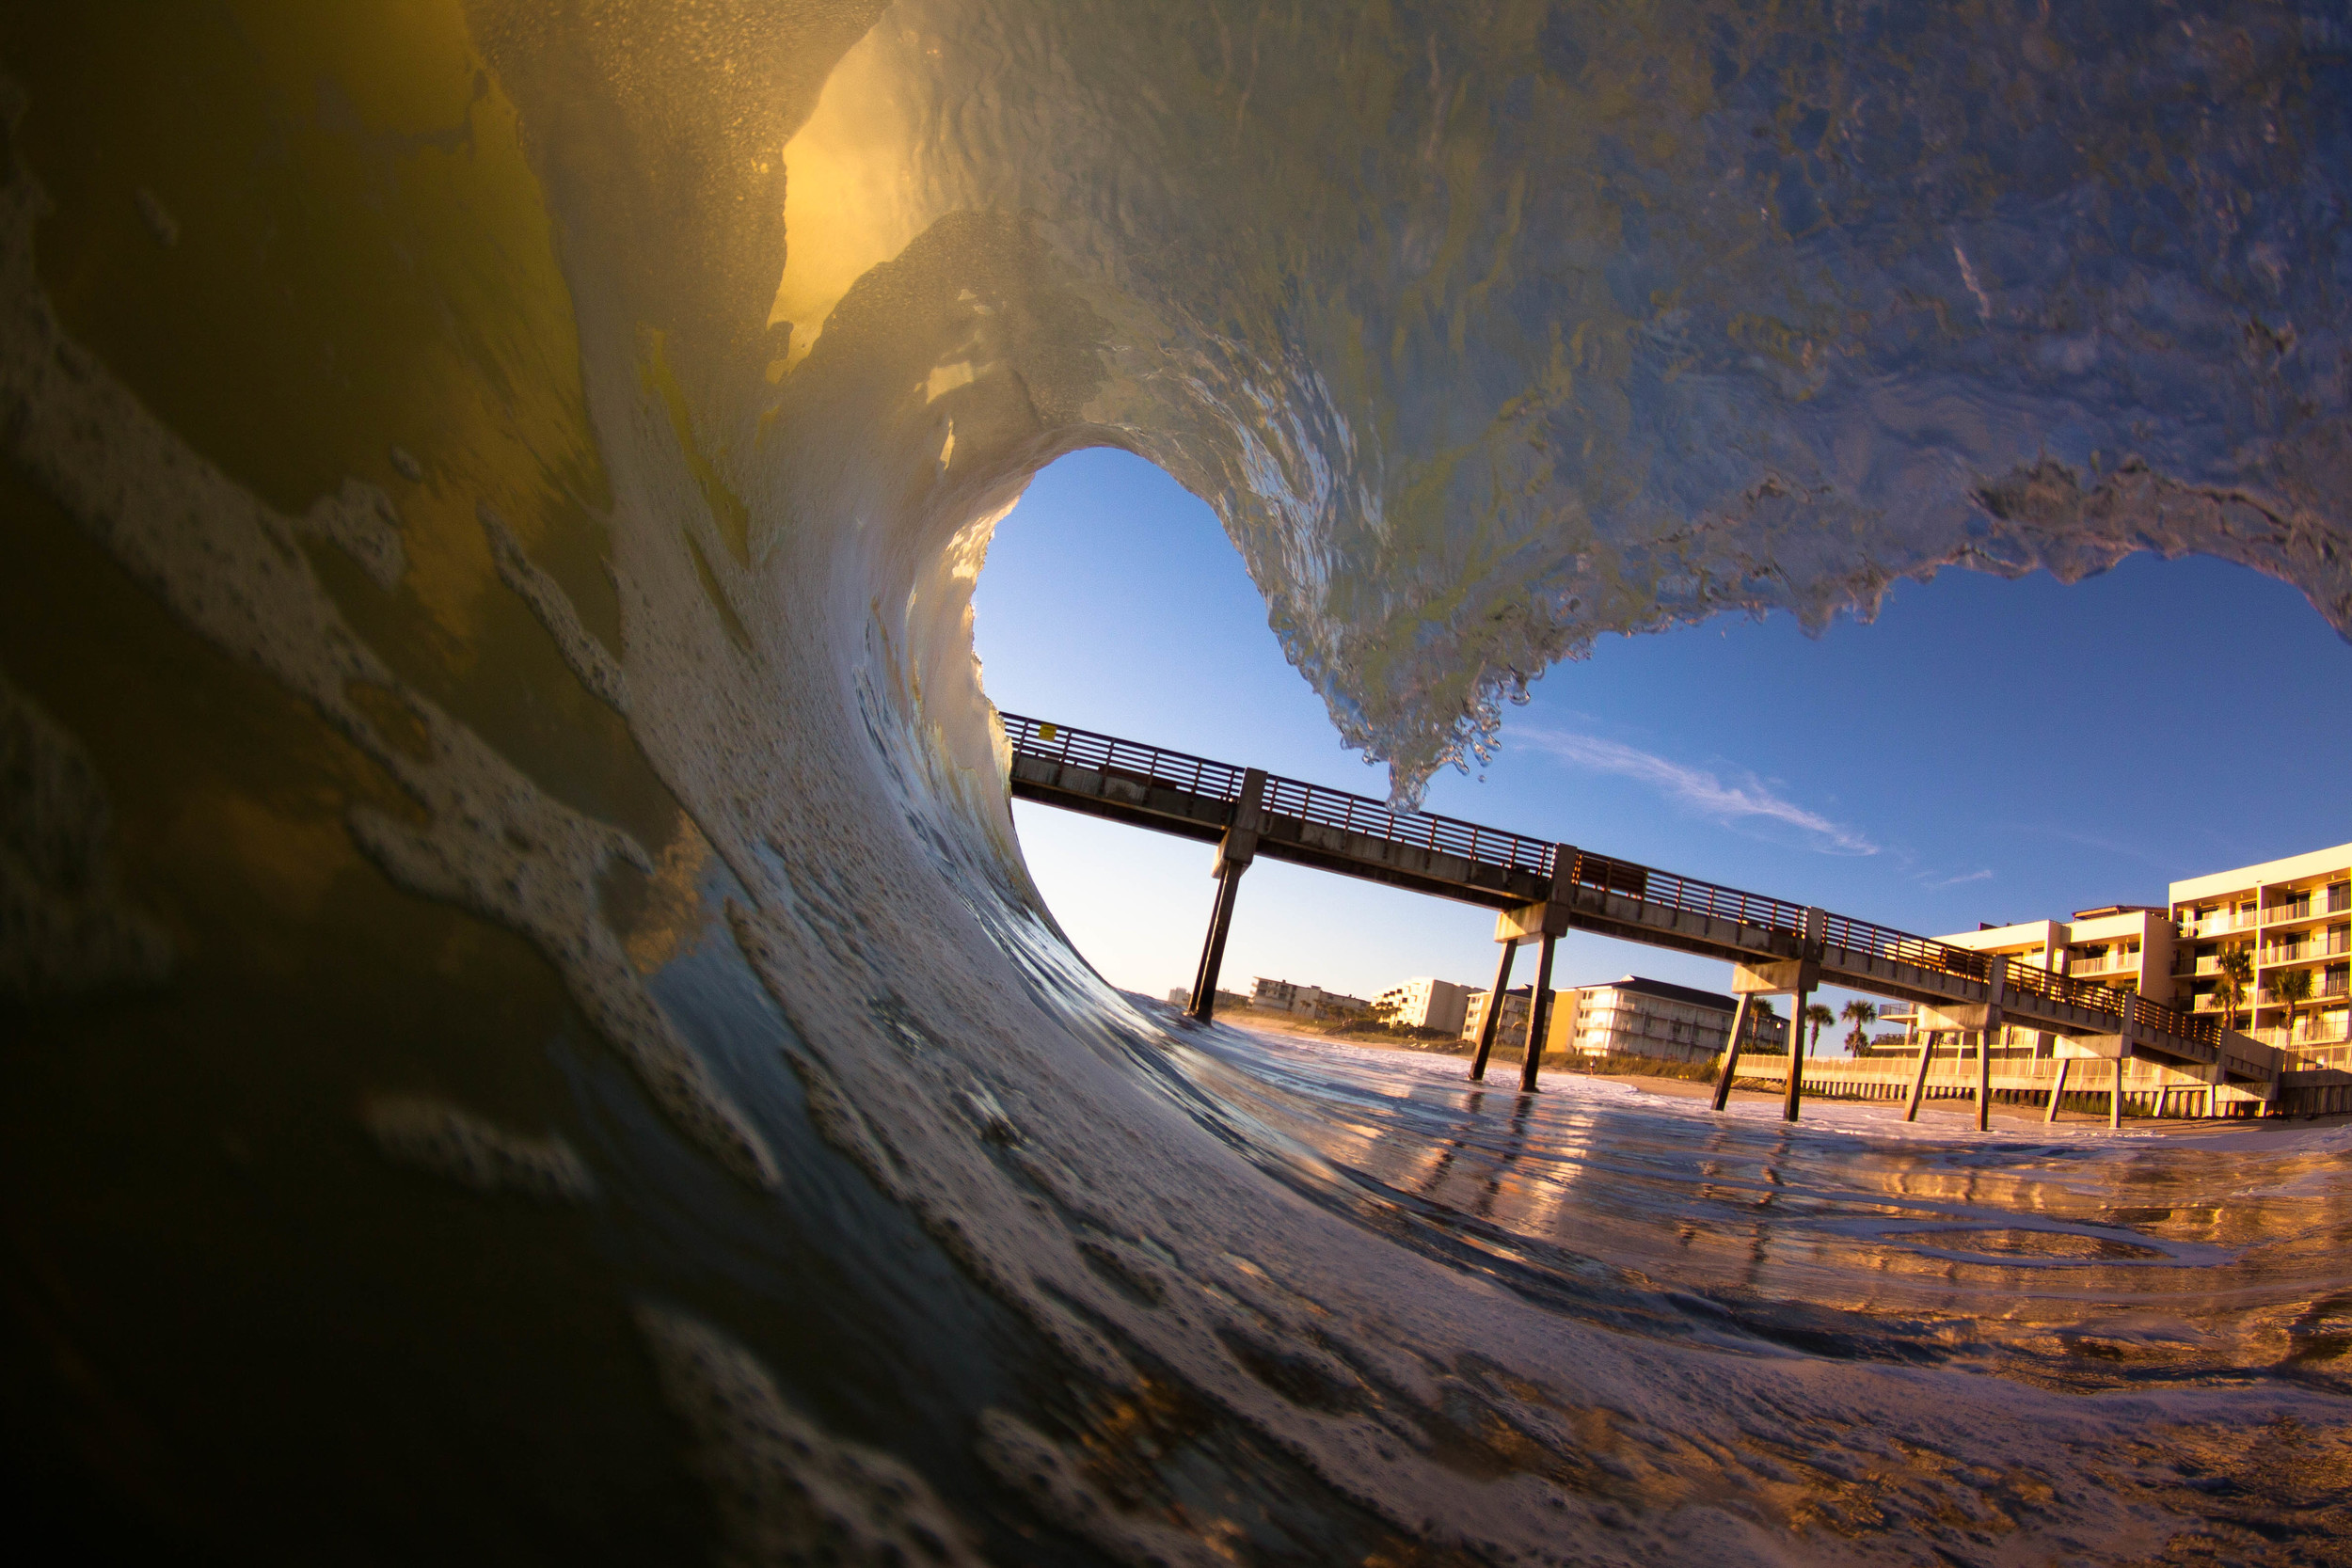 One more from the above day. Sometimes these insiders get that foam on the face of the wave and I really like it. I'd give it a thumbs up if I could. Anyways, love the pier angle on this shot too! That was a great morning.